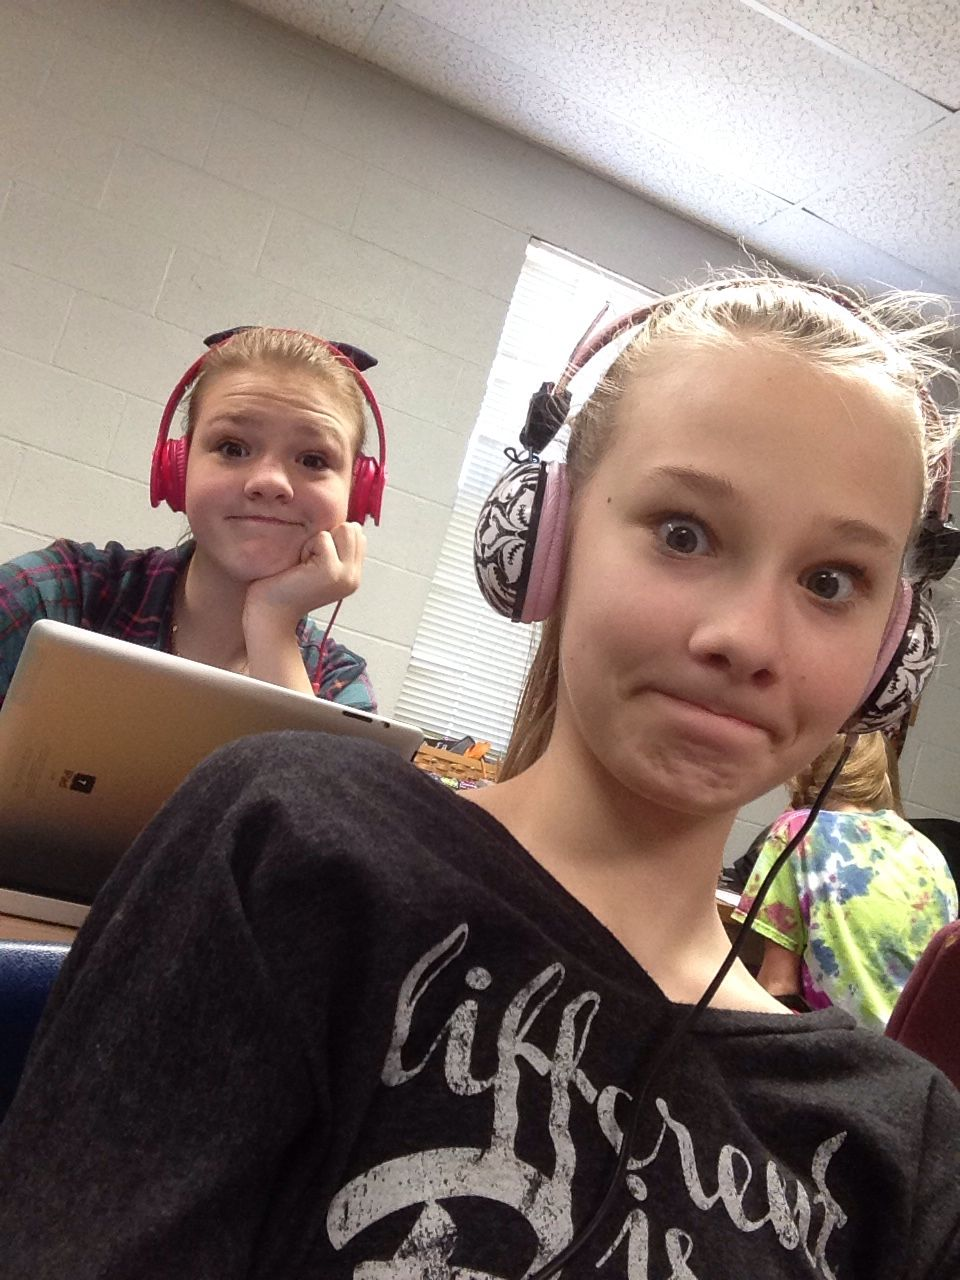 That awkward moment when u get photo bombed while taking a selfie in class